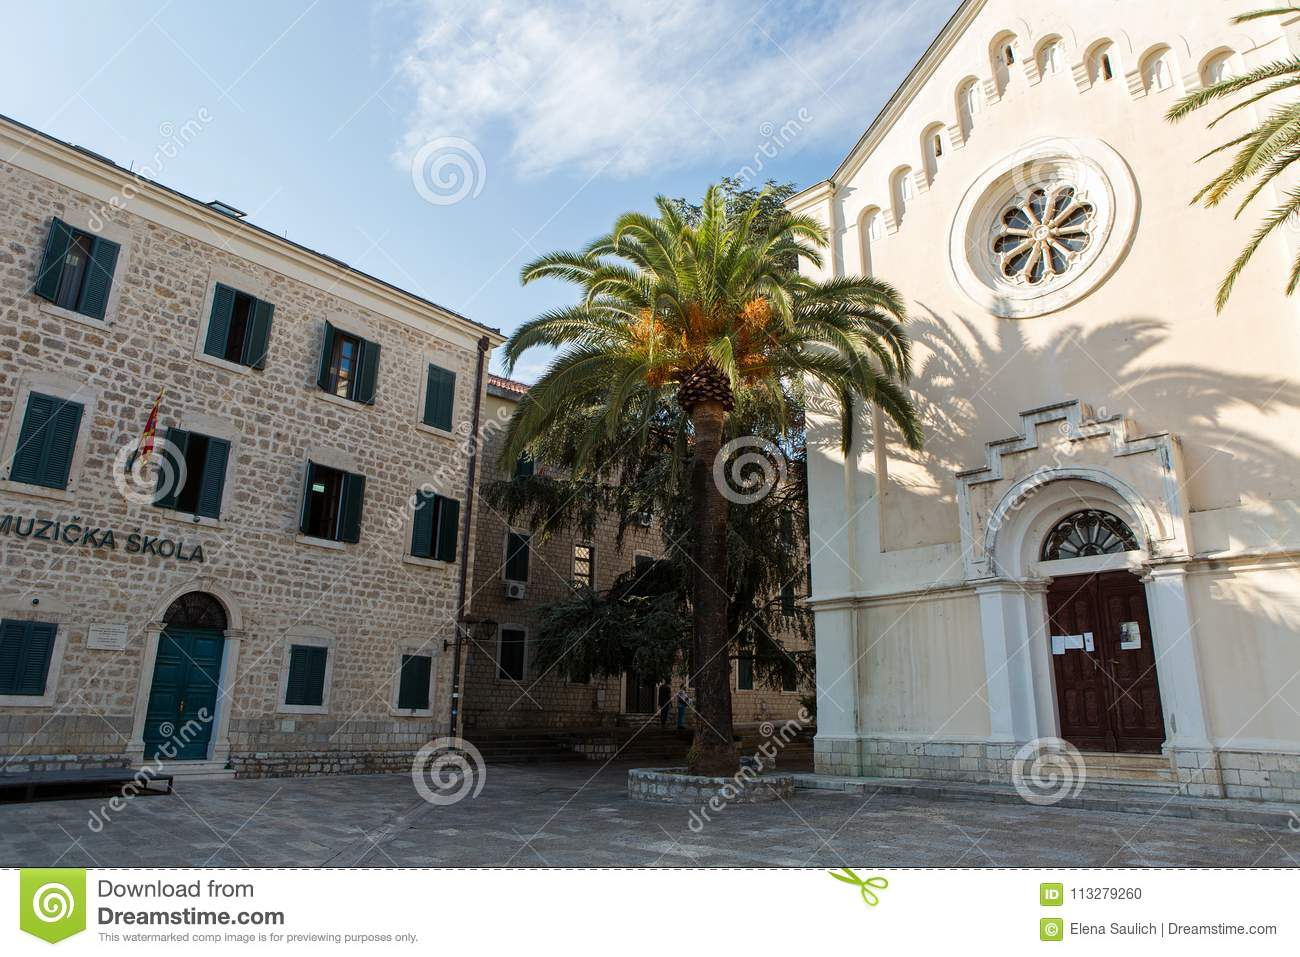 Music School And Church In The Old City Editorial Image - Image of